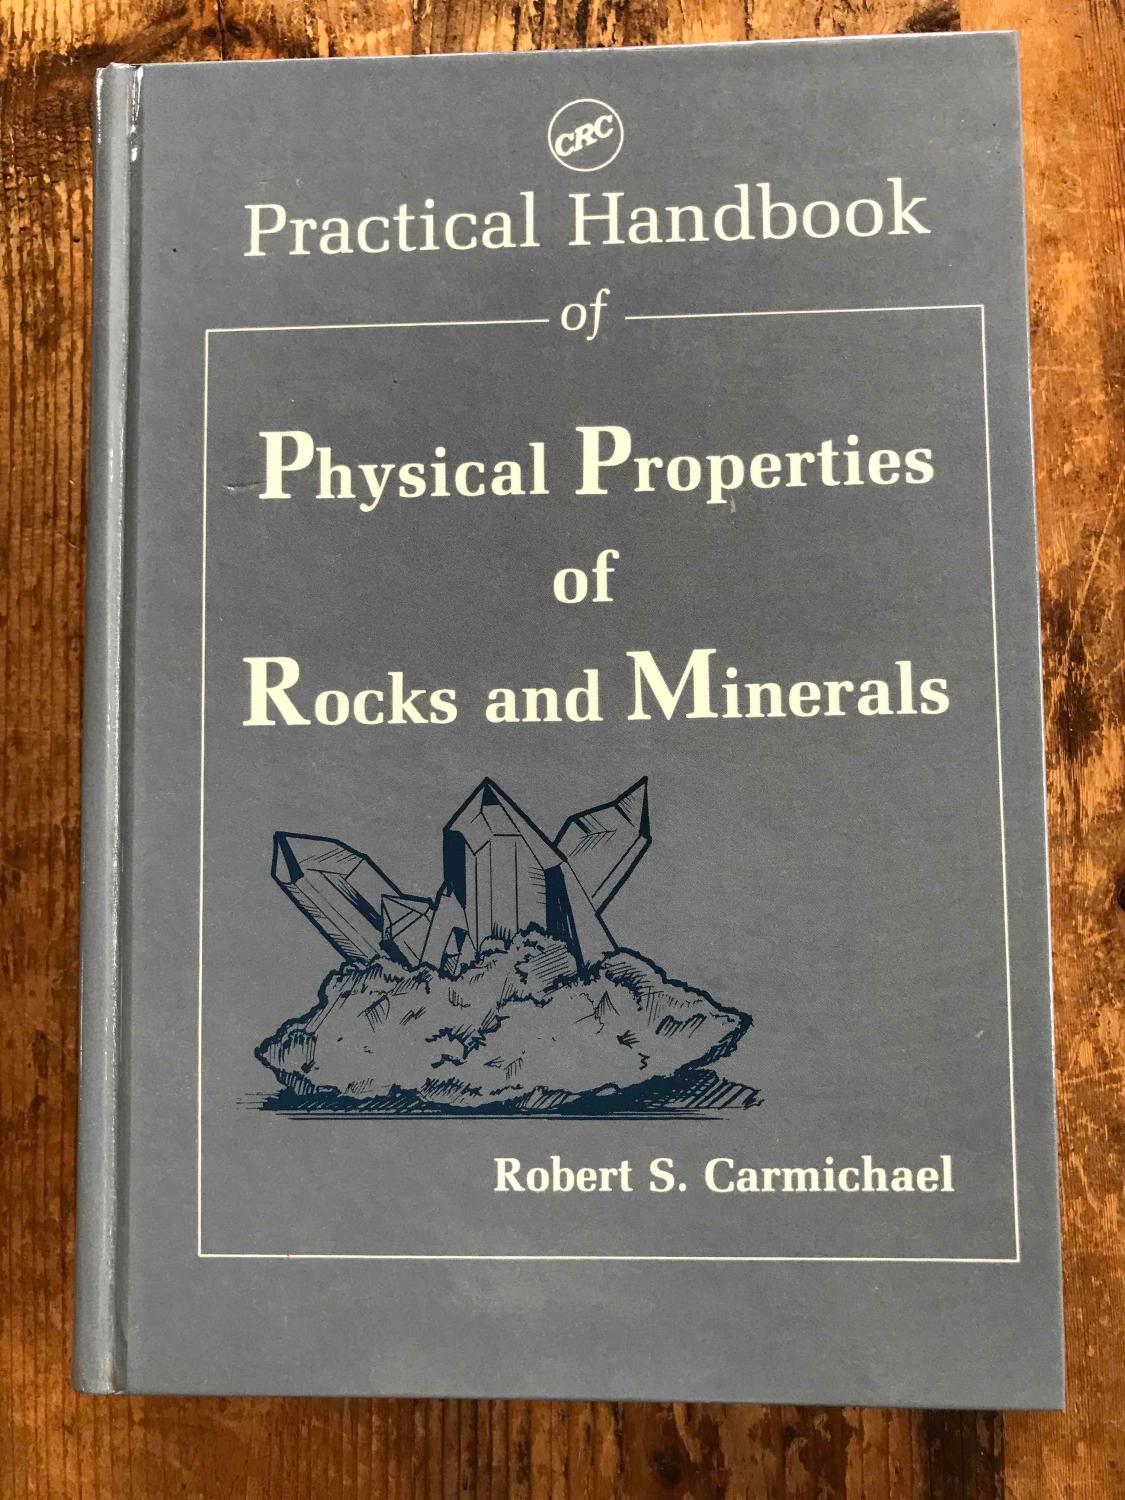 INTRODUCTION TO PETROLOGY